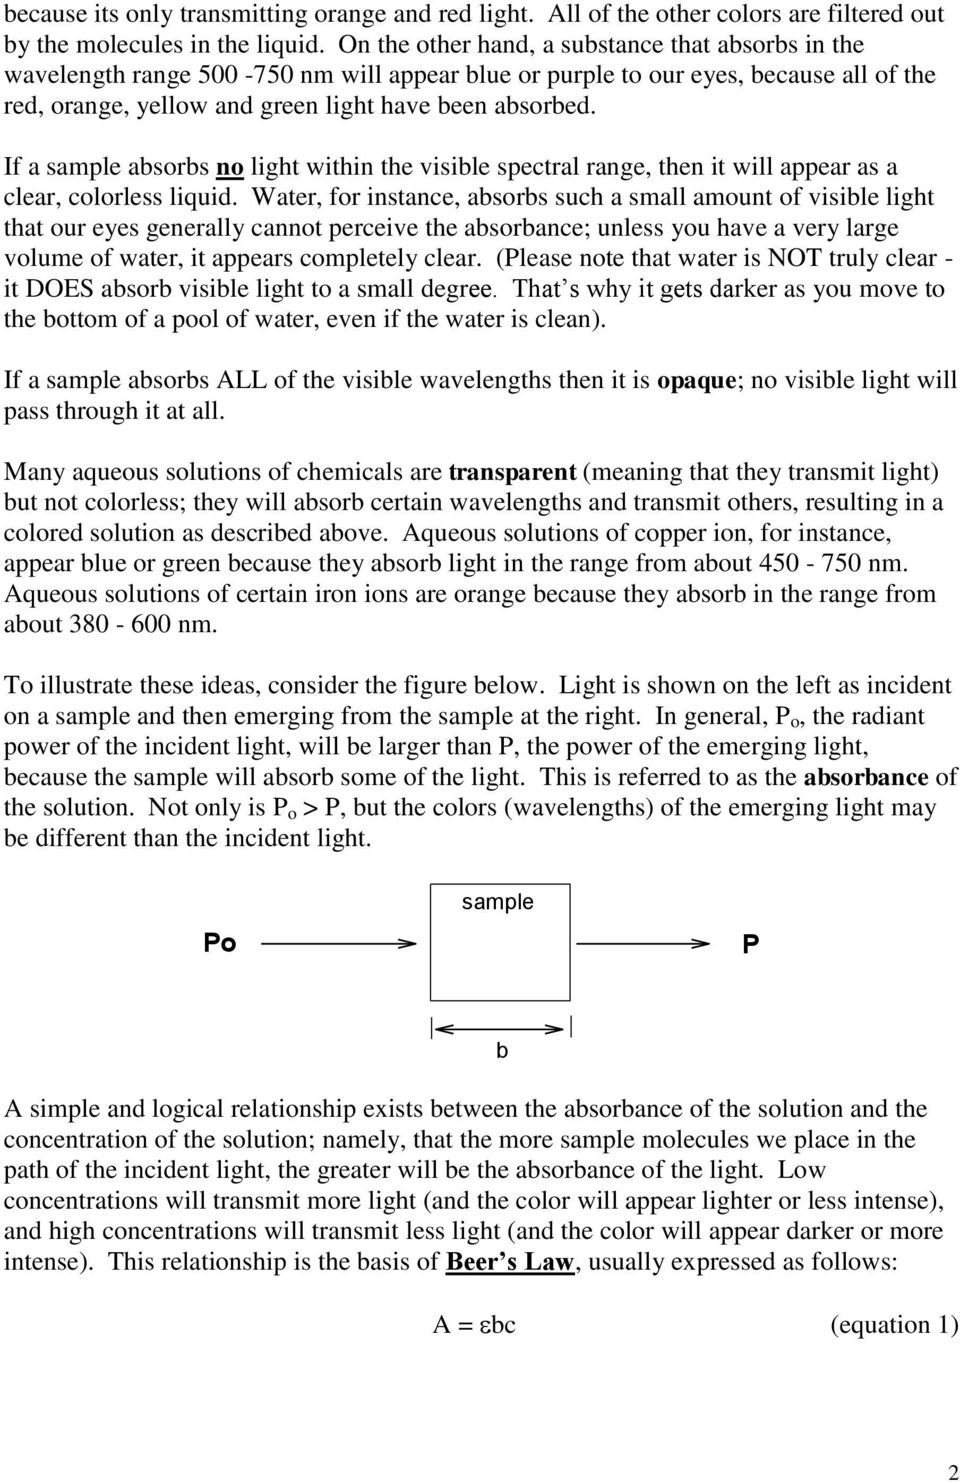 If a sample absorbs no light within the visible spectral range, then it will appear as a clear, colorless liquid.